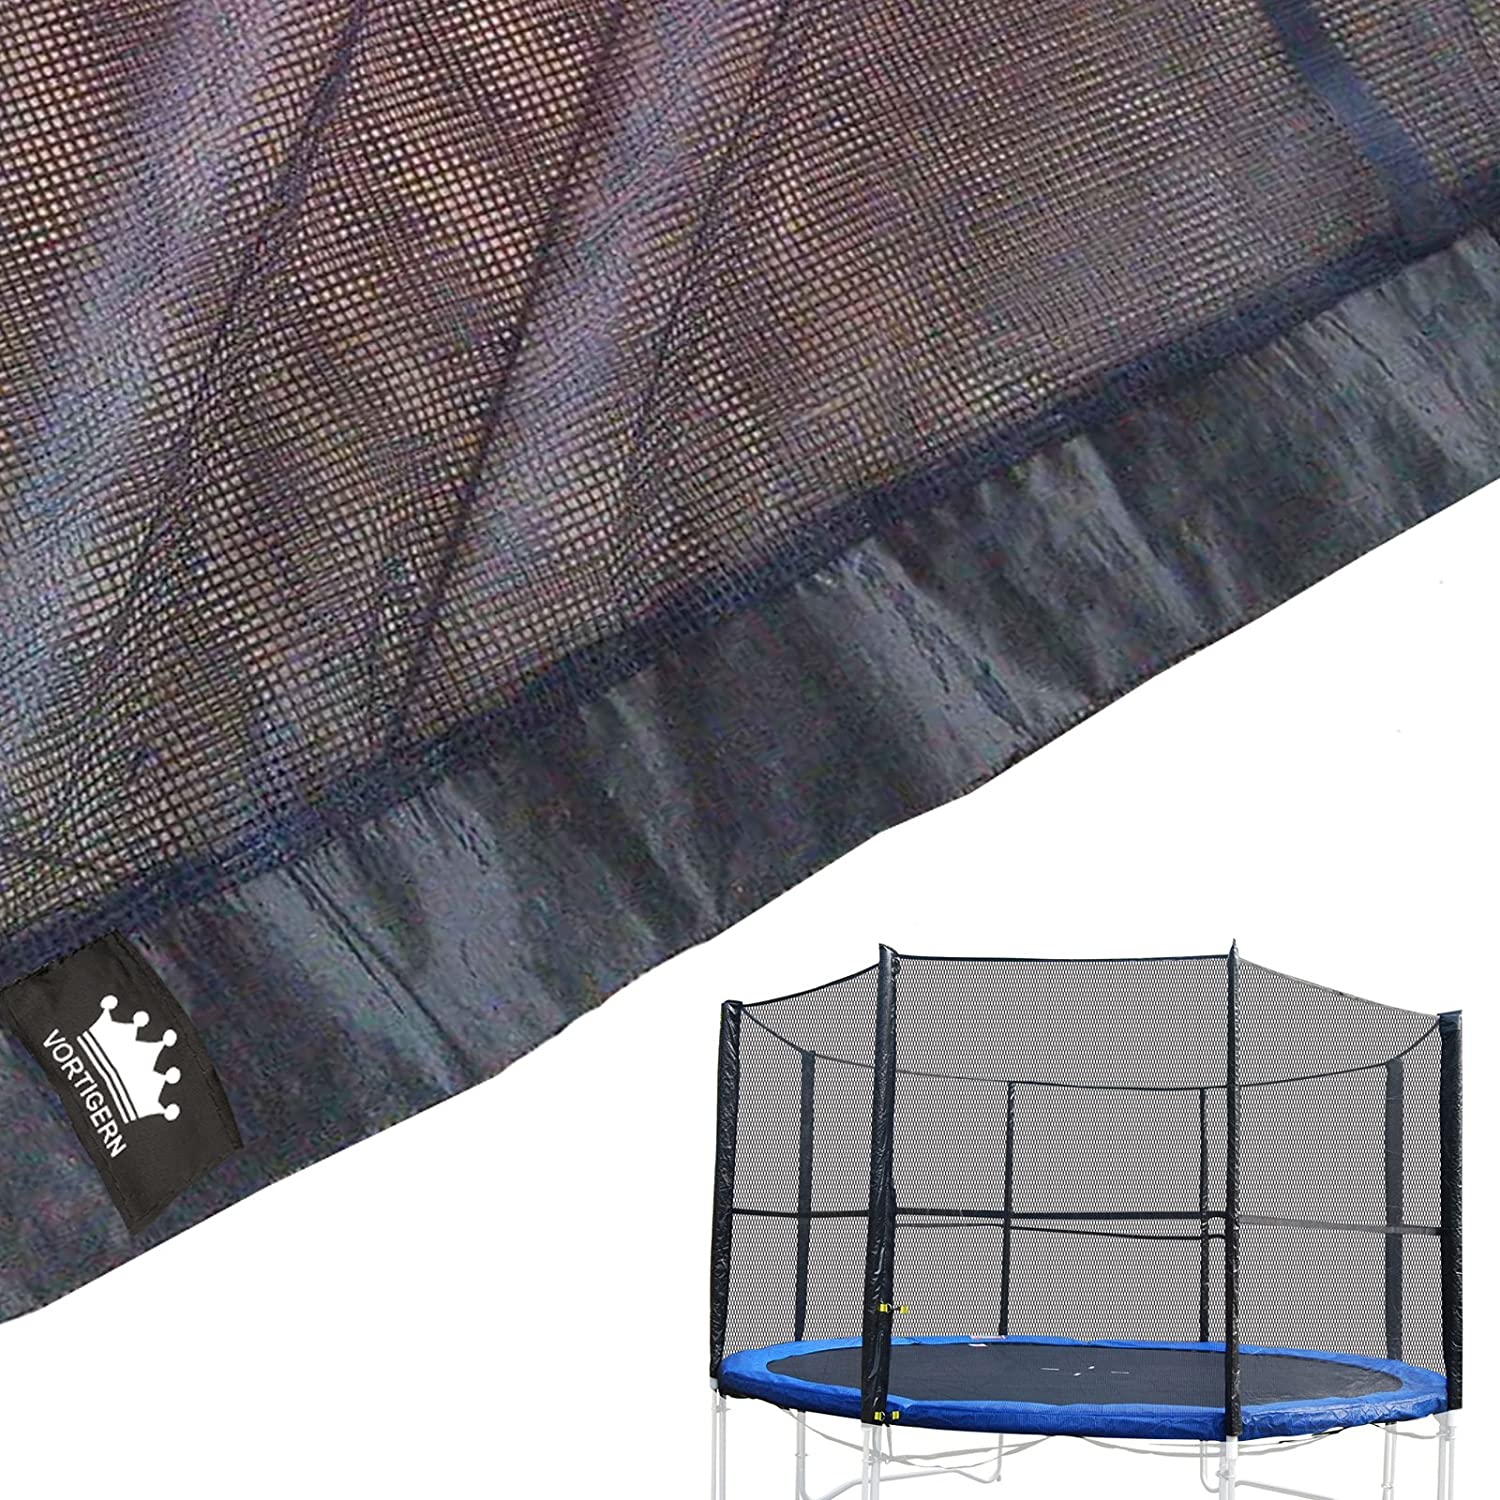 Vortigern Replacement Safety Netting for 10ft Diameter EIGHT pole Trampolines NET10